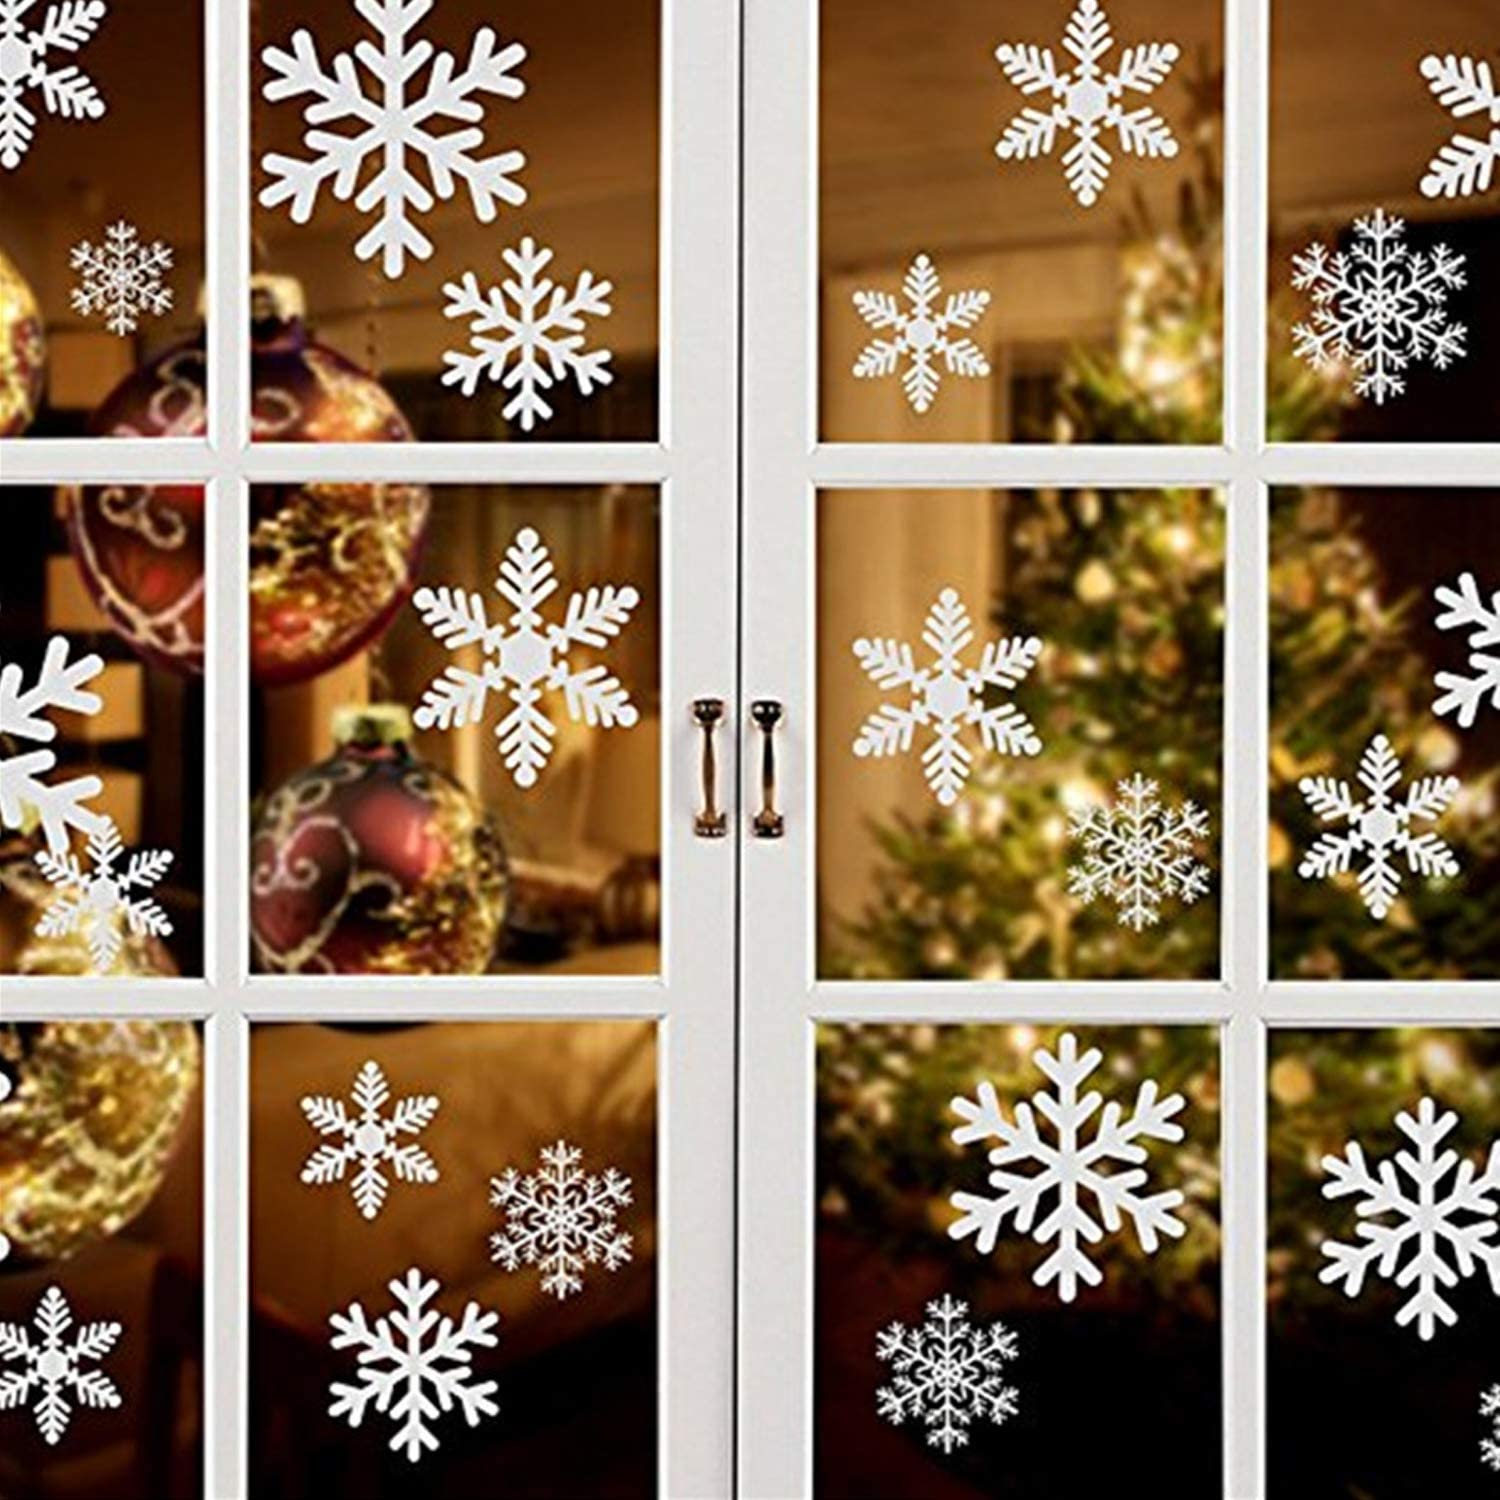 Style 1 500 Pieces Mini Foam Snowflake Stickers Self-Adhesive Snowflake Stickers Decals for Christmas Decoration